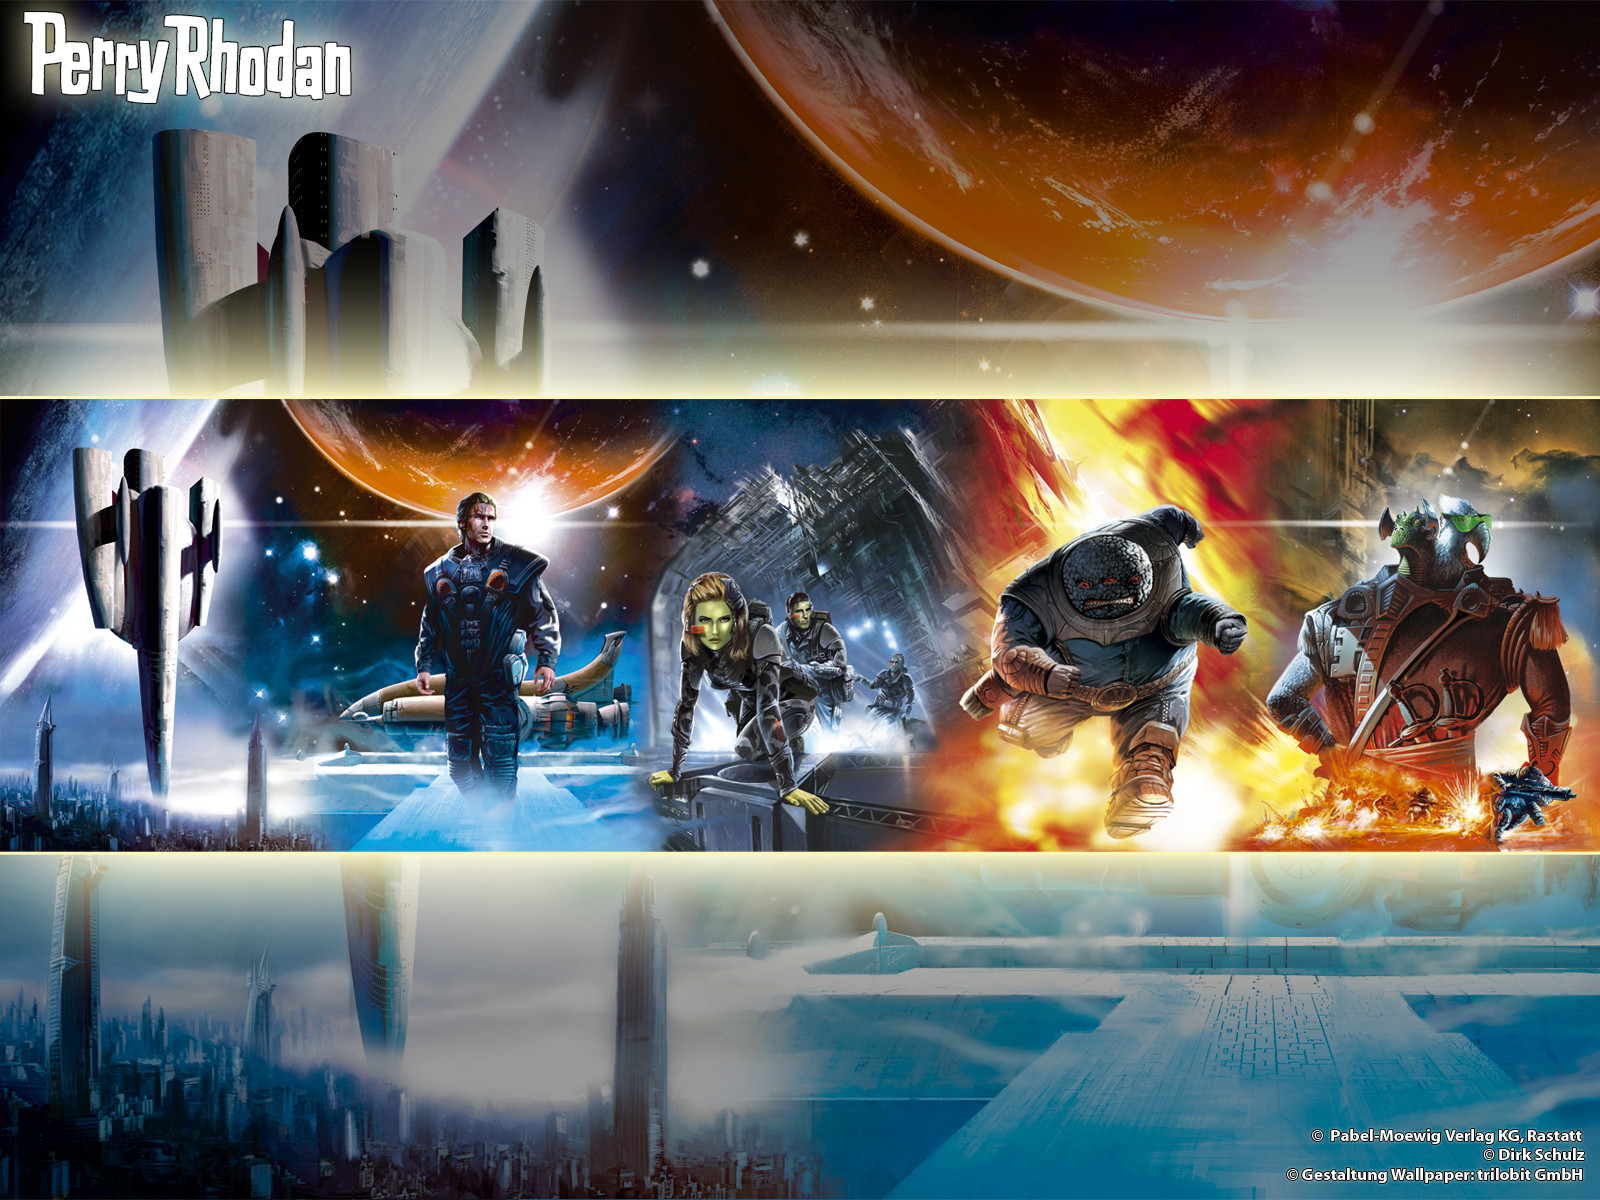 perry rhodan HD Wallpaper